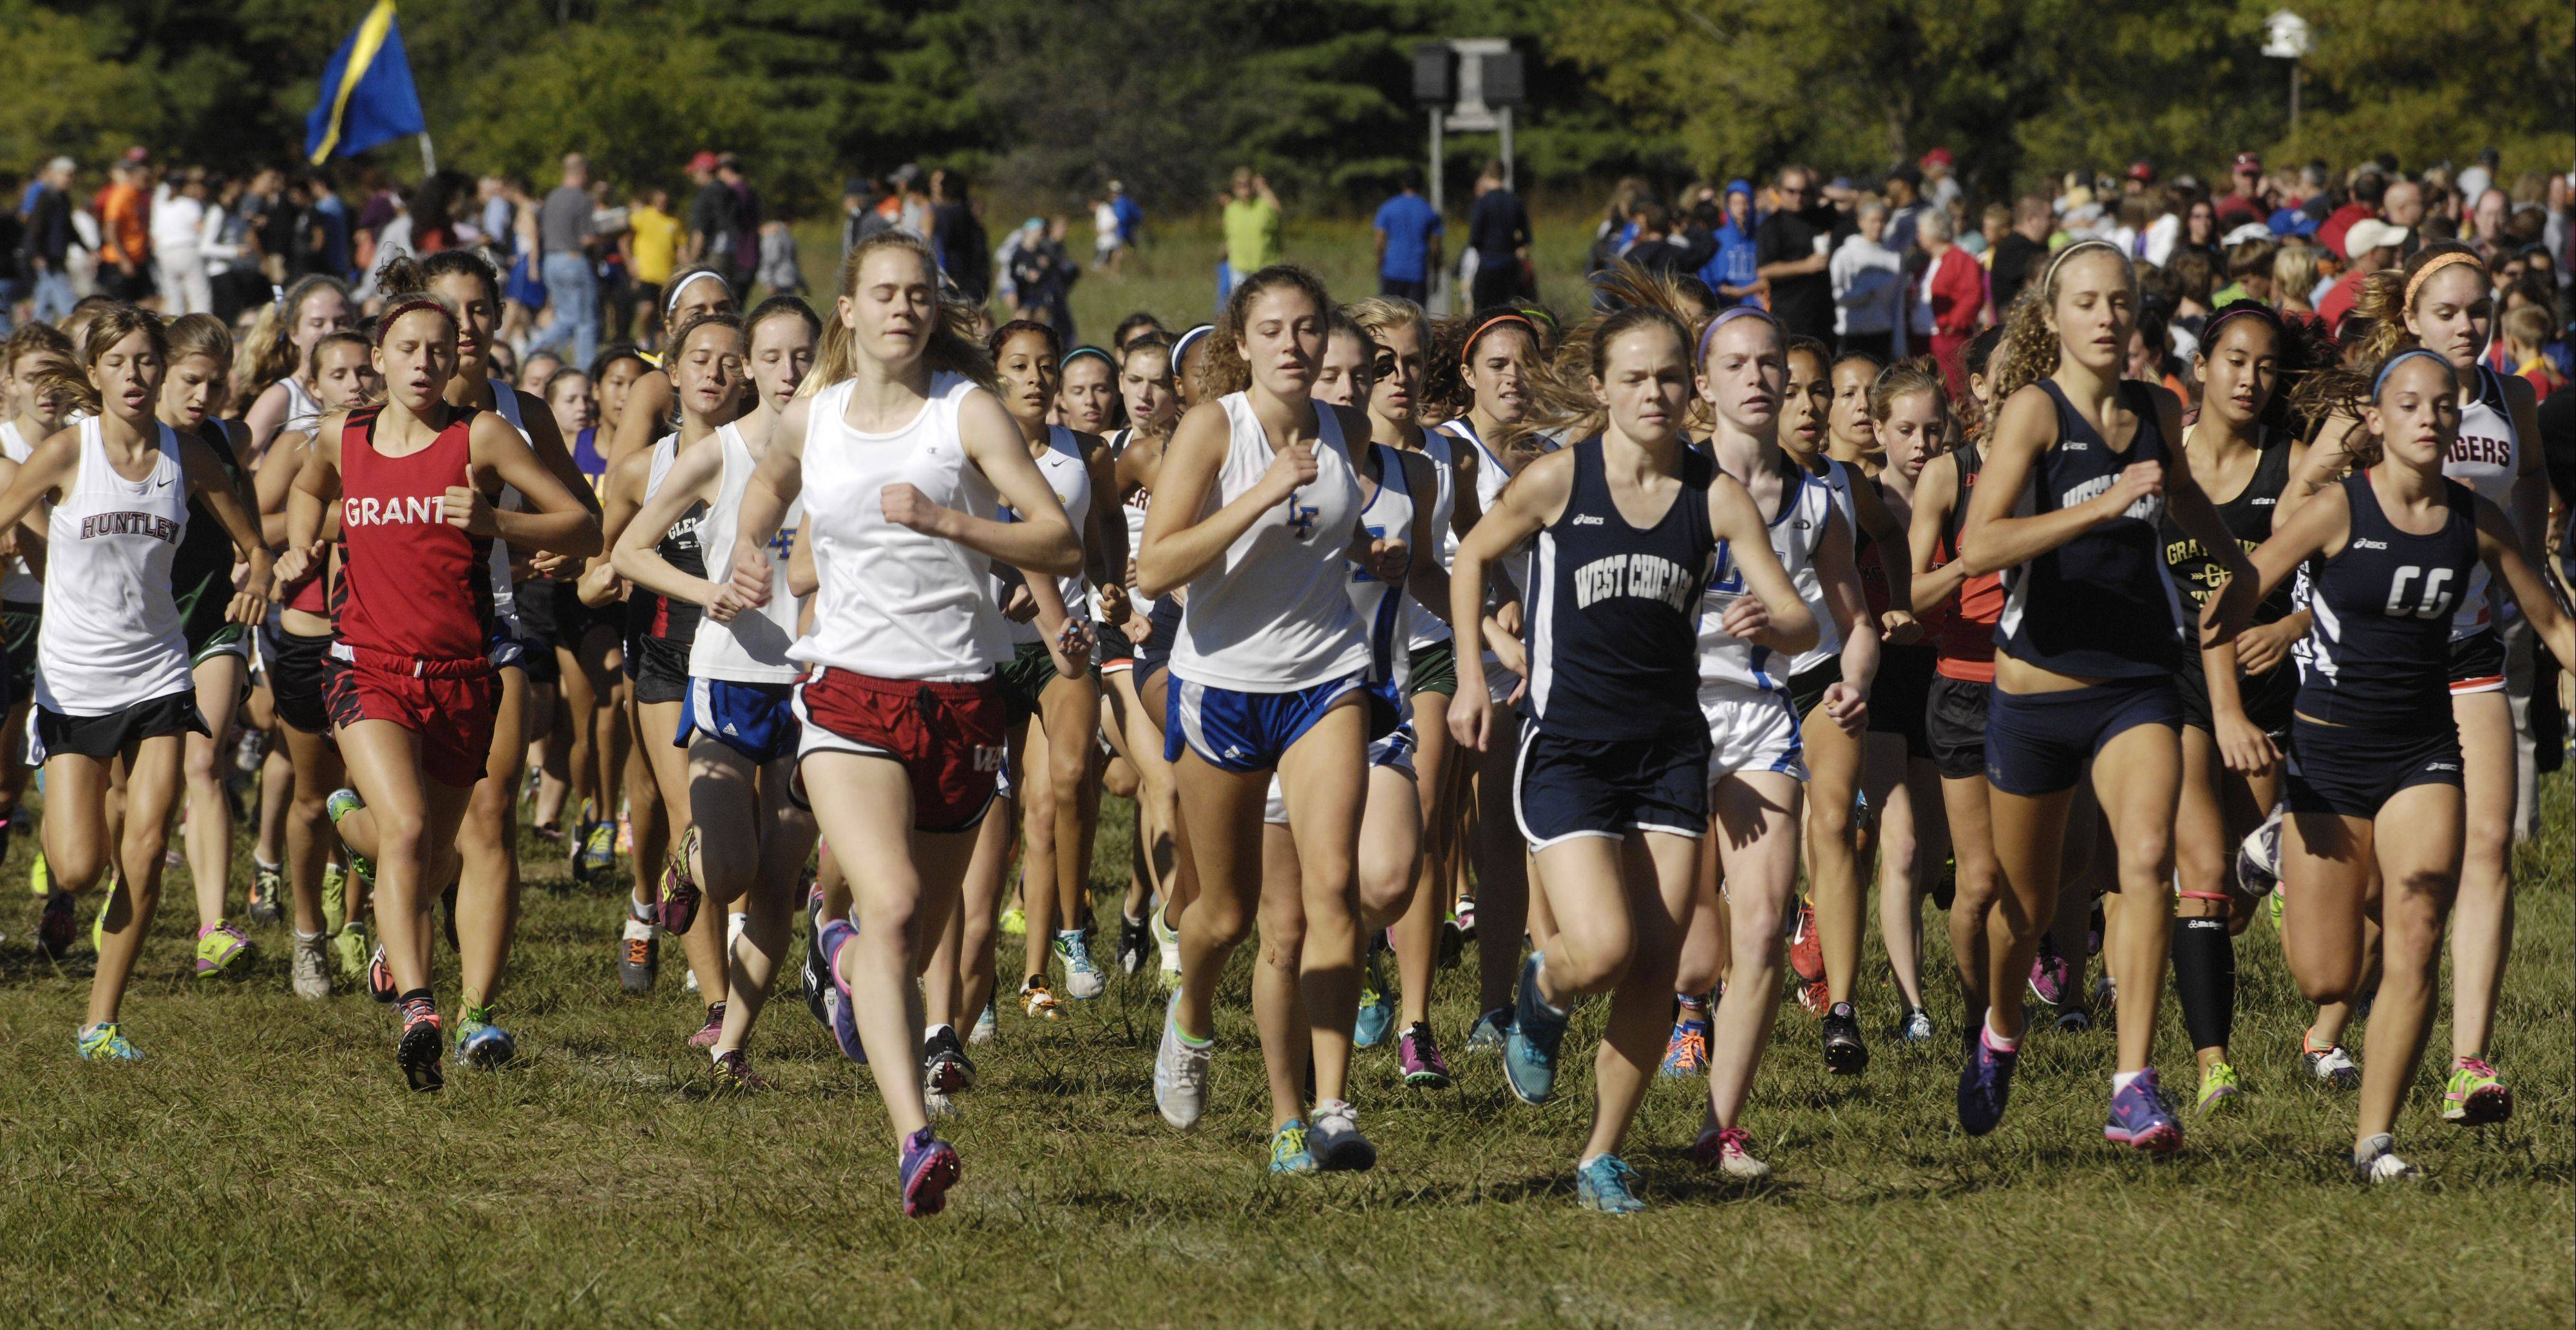 And they're off ... in the varsity girls race of the Wauconda Invitational at Lakewood Forest Preserve on Saturday.